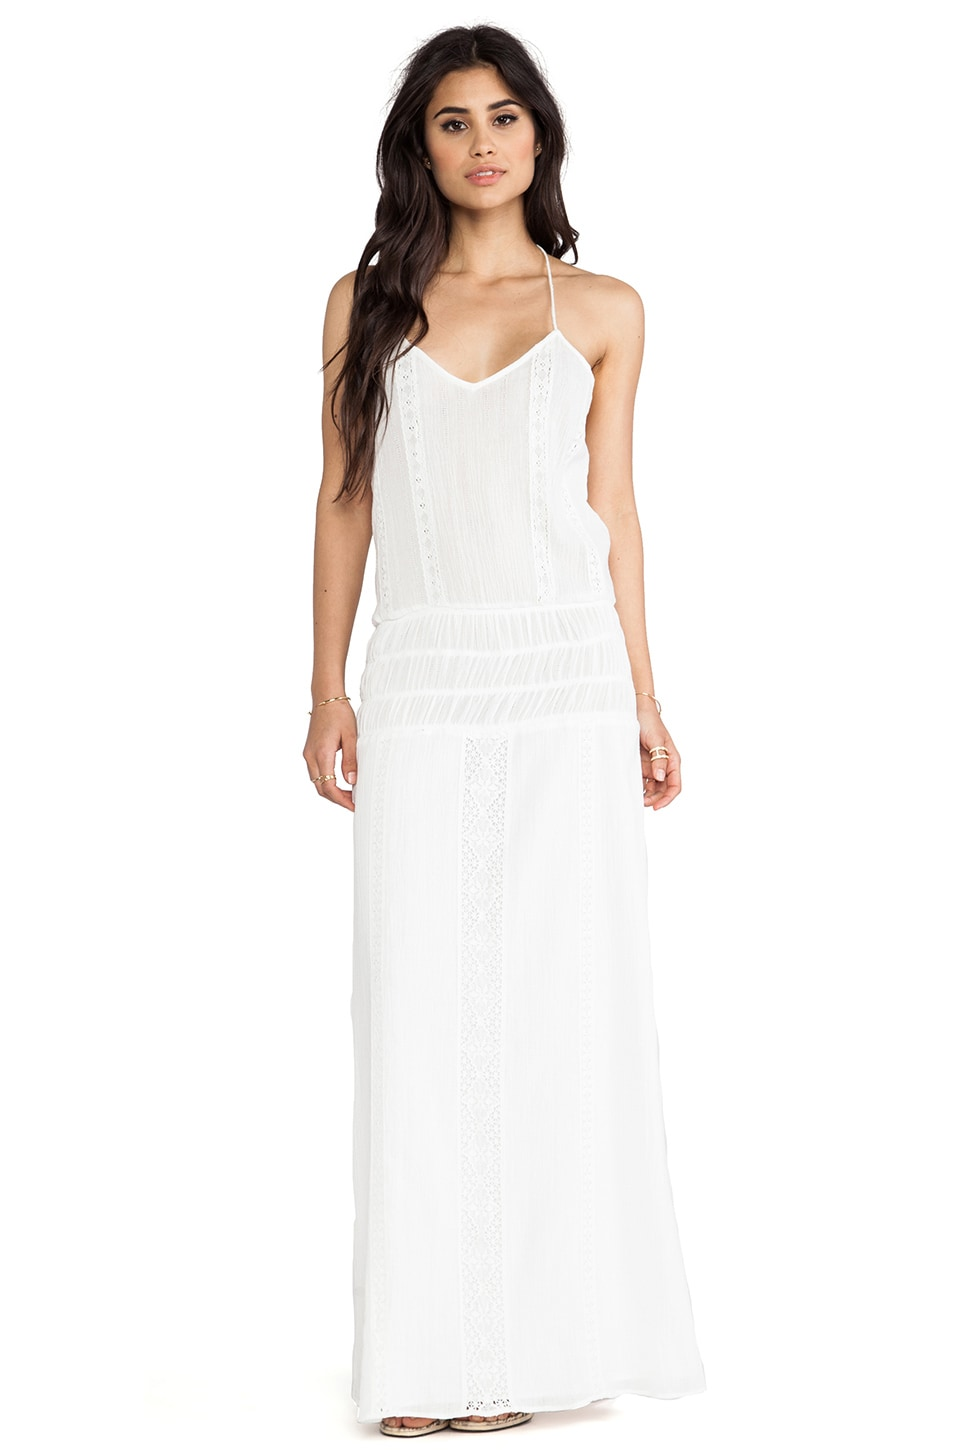 Dolce Vita Mehadi Dress in White